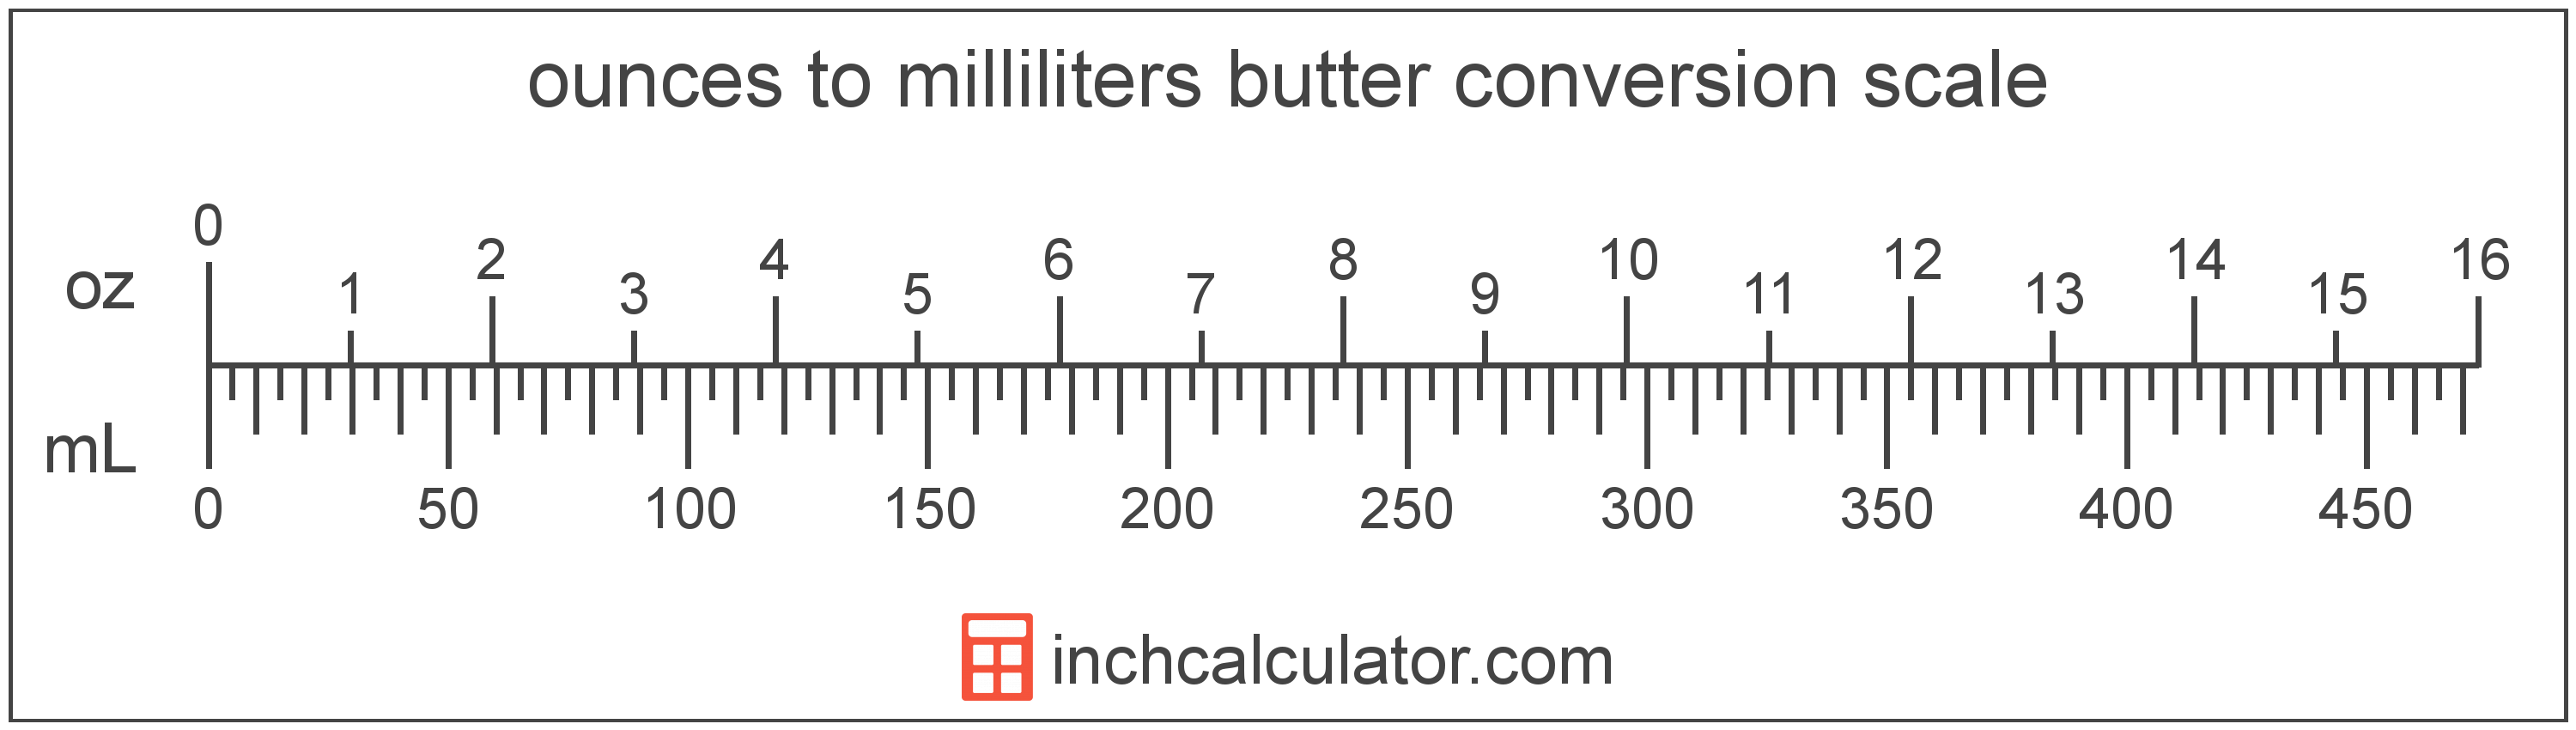 conversion scale showing milliliters and equivalent ounces butter values